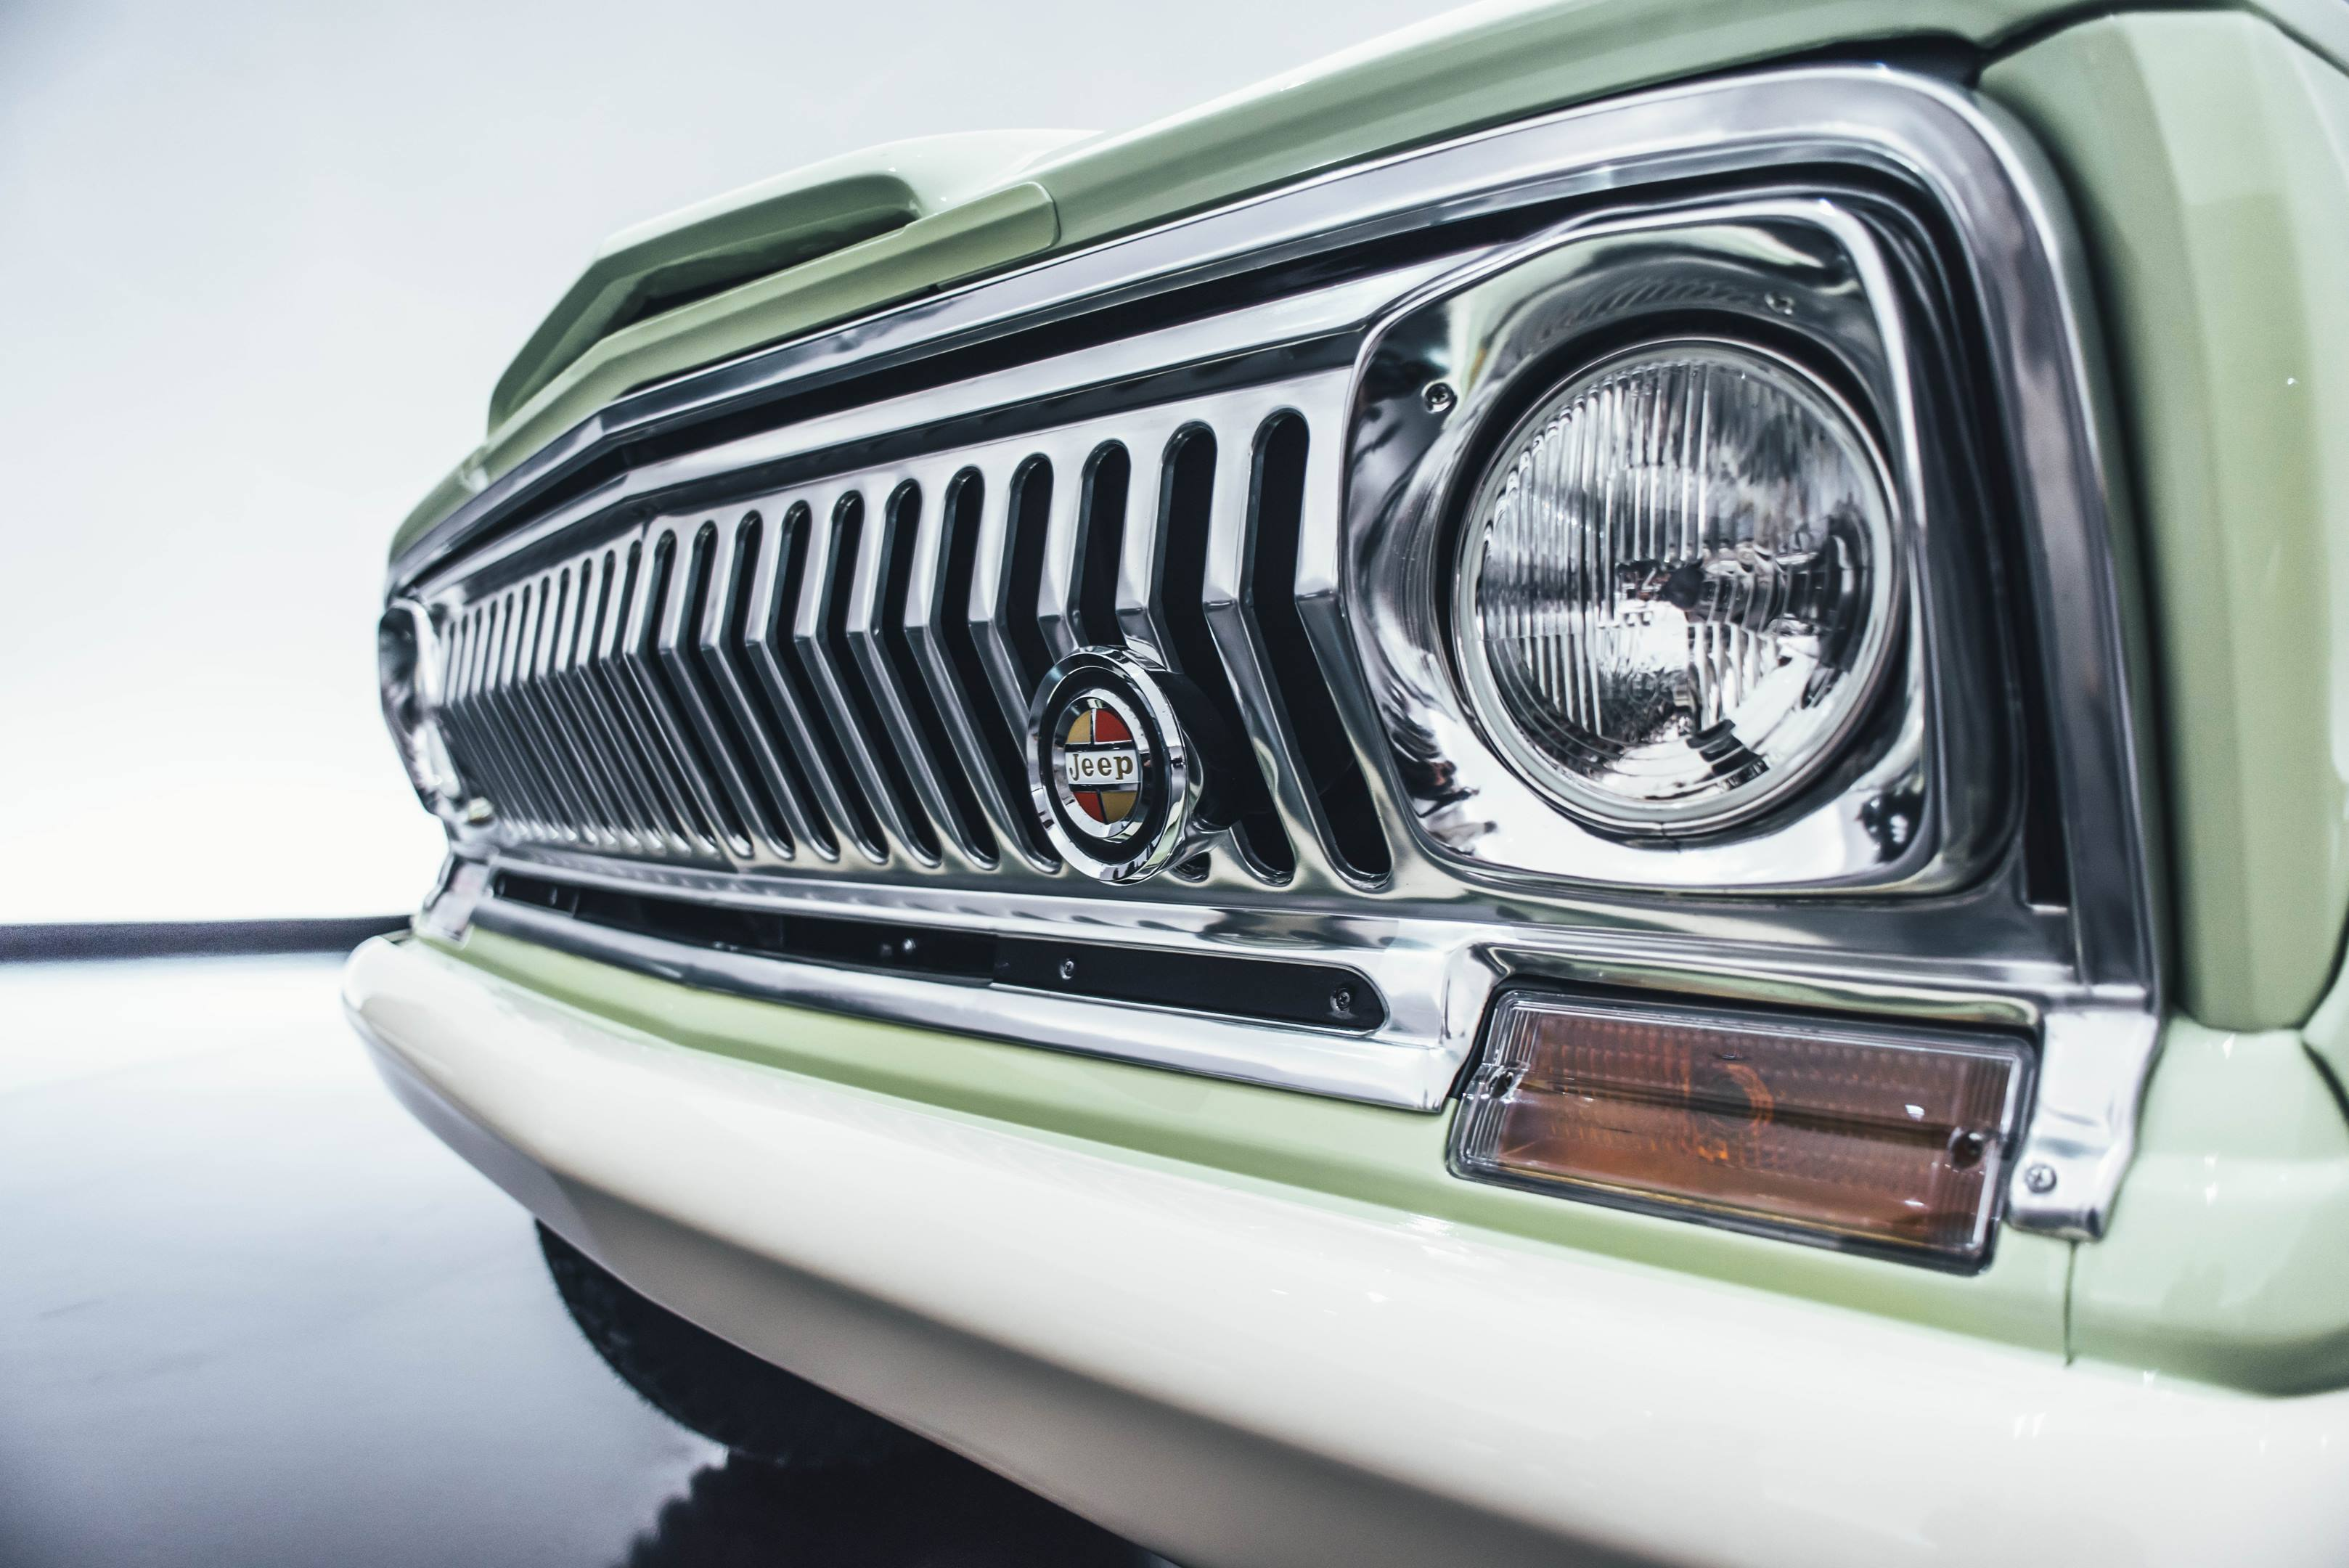 2018 Jeep Wagoneer Roadtrip Concept grille